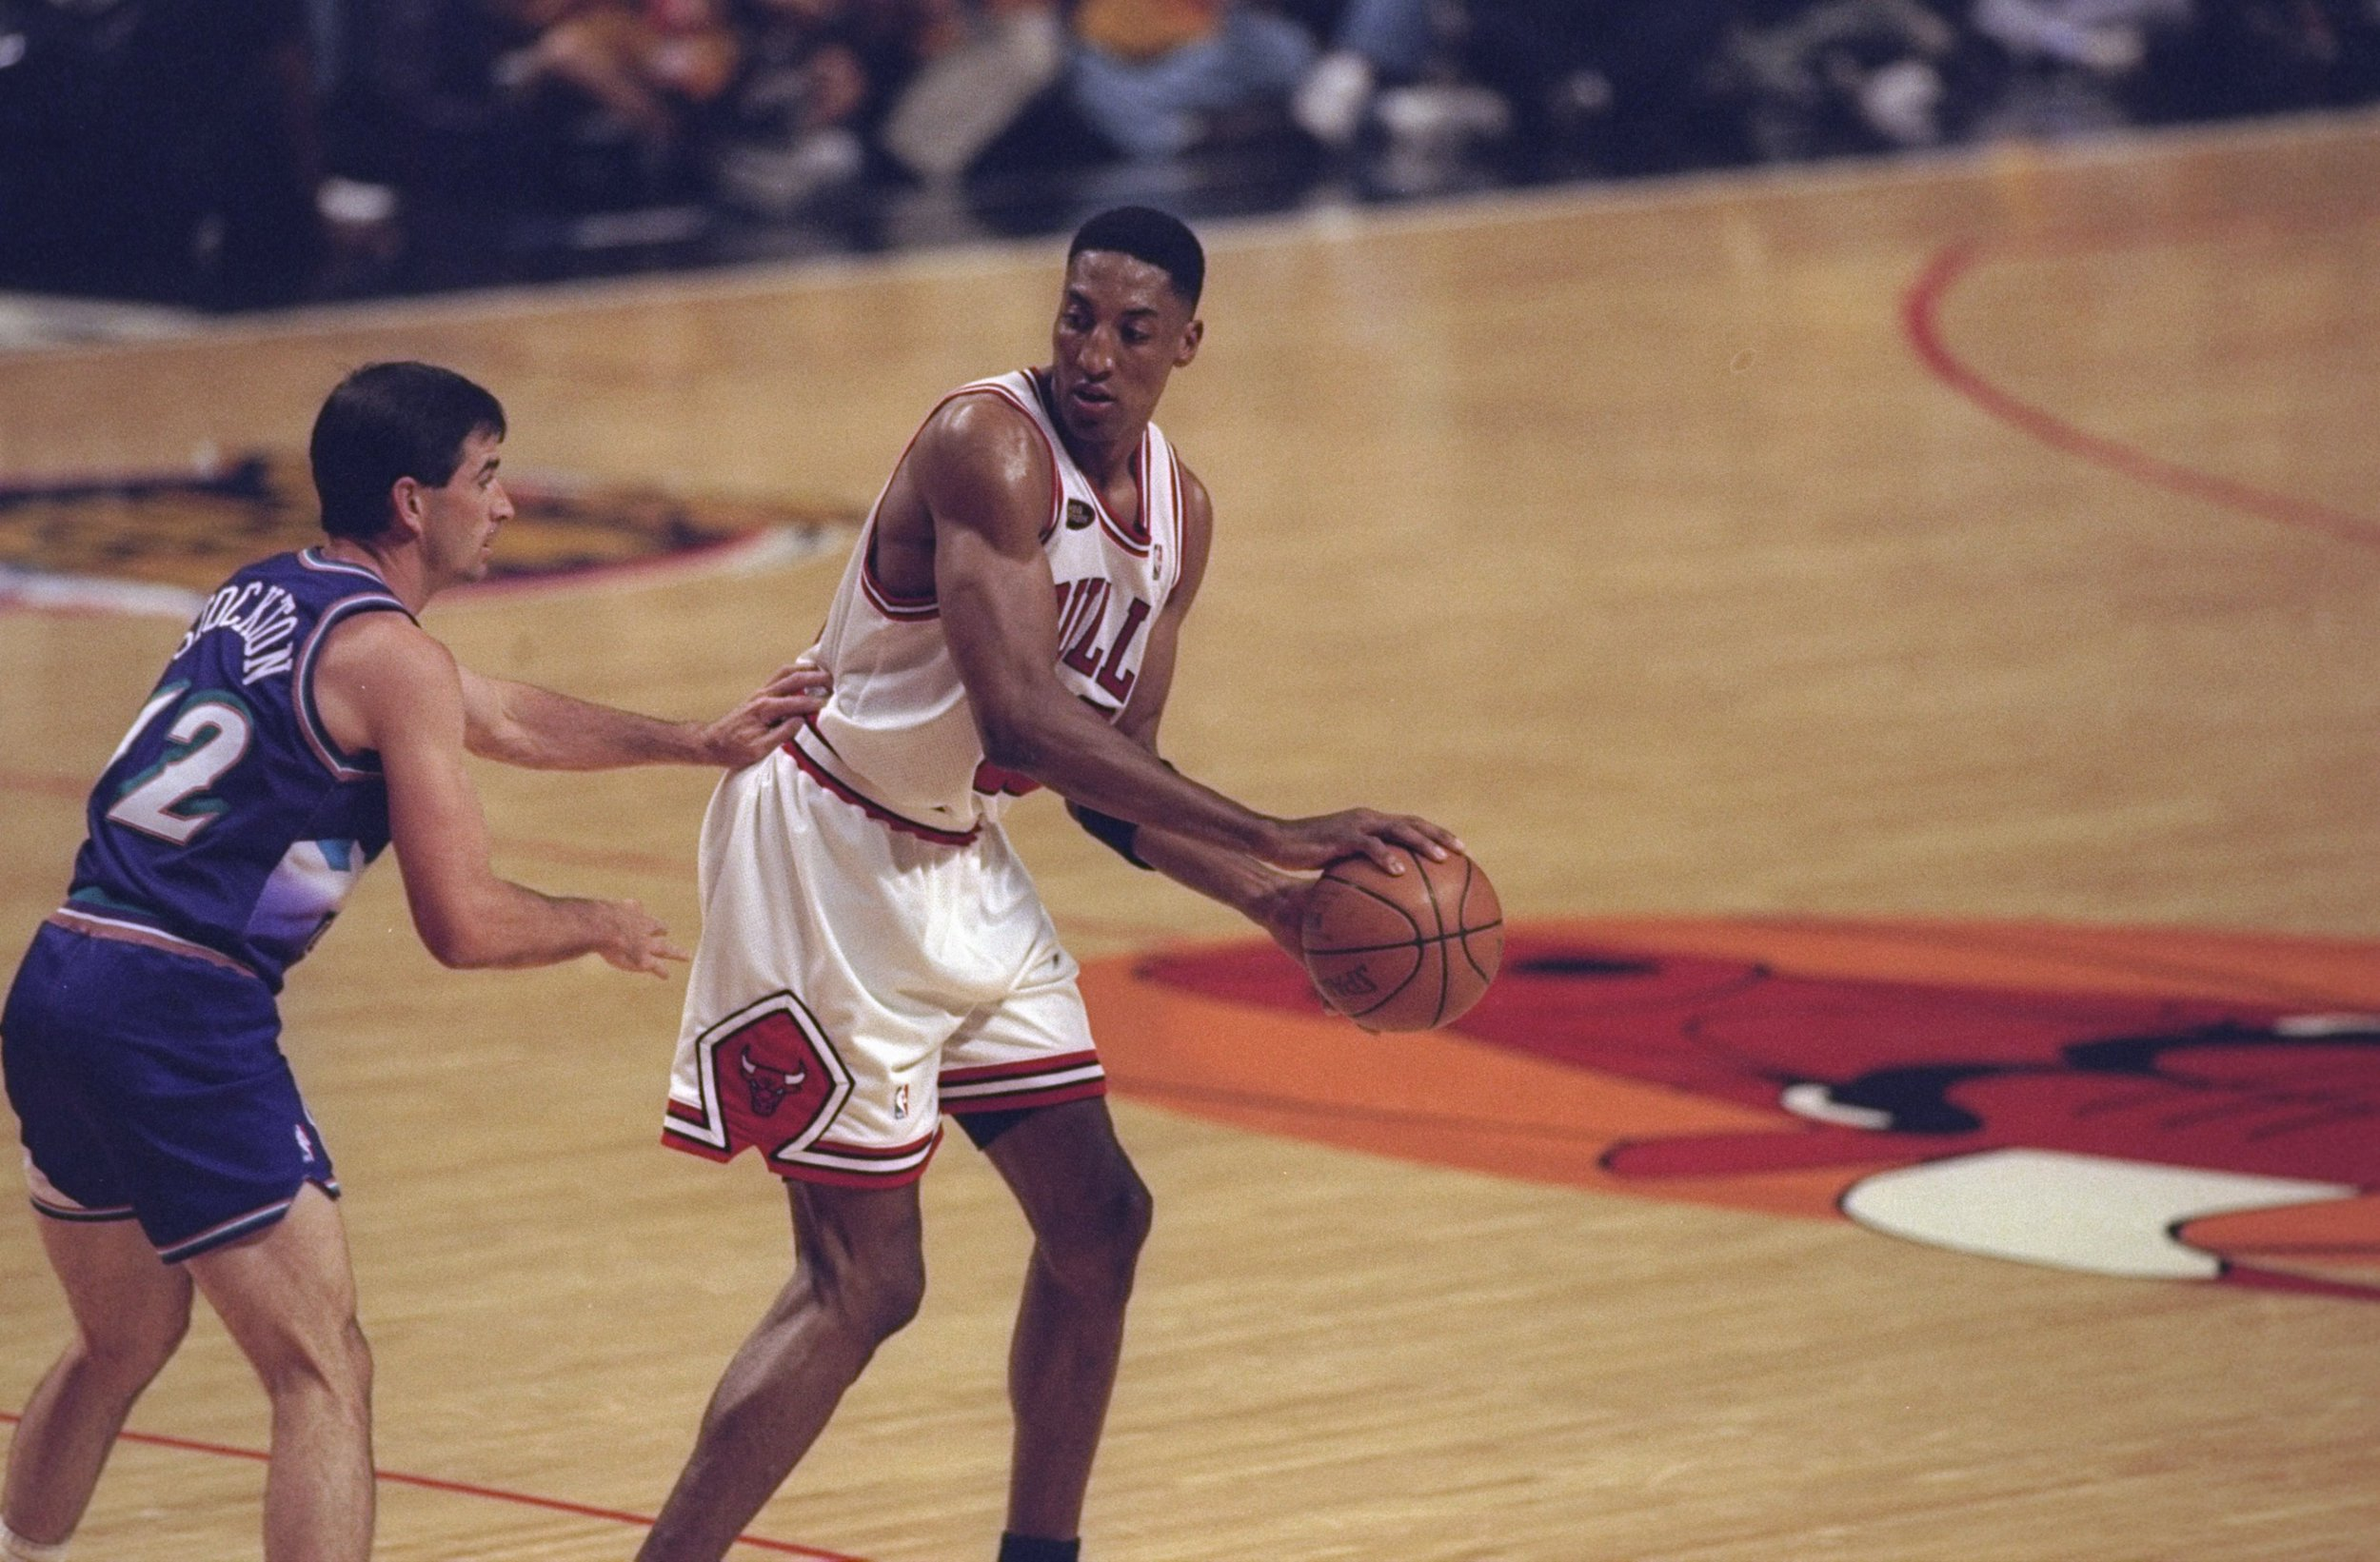 While Scottie Pippen returned to the Chicago Bulls at the end of his career, it wasn't the best decision.